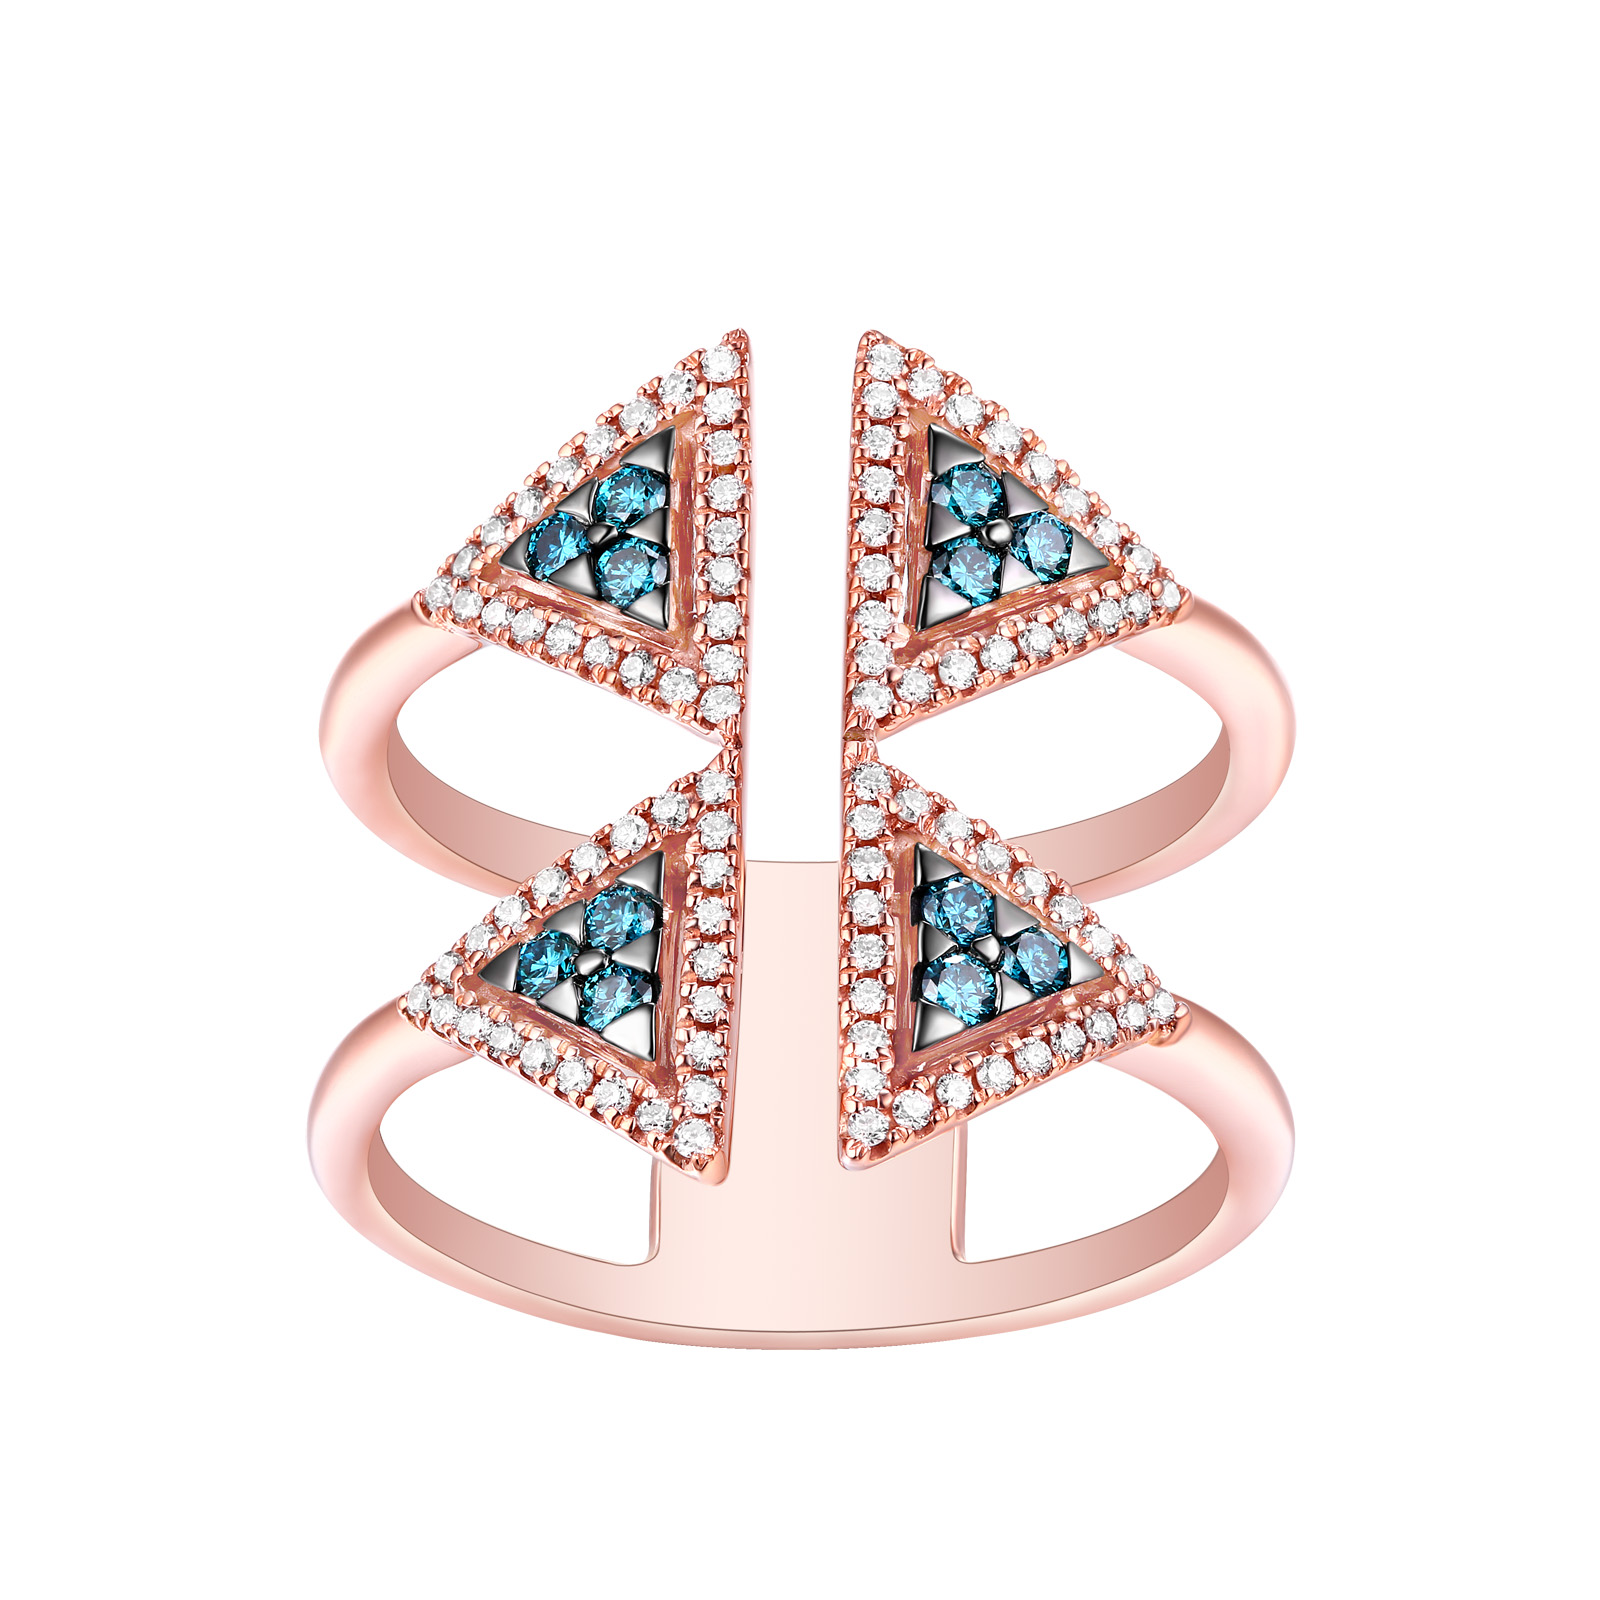 R25082ICE- 18K Rose Gold Diamond Ring, 0.41 TCW